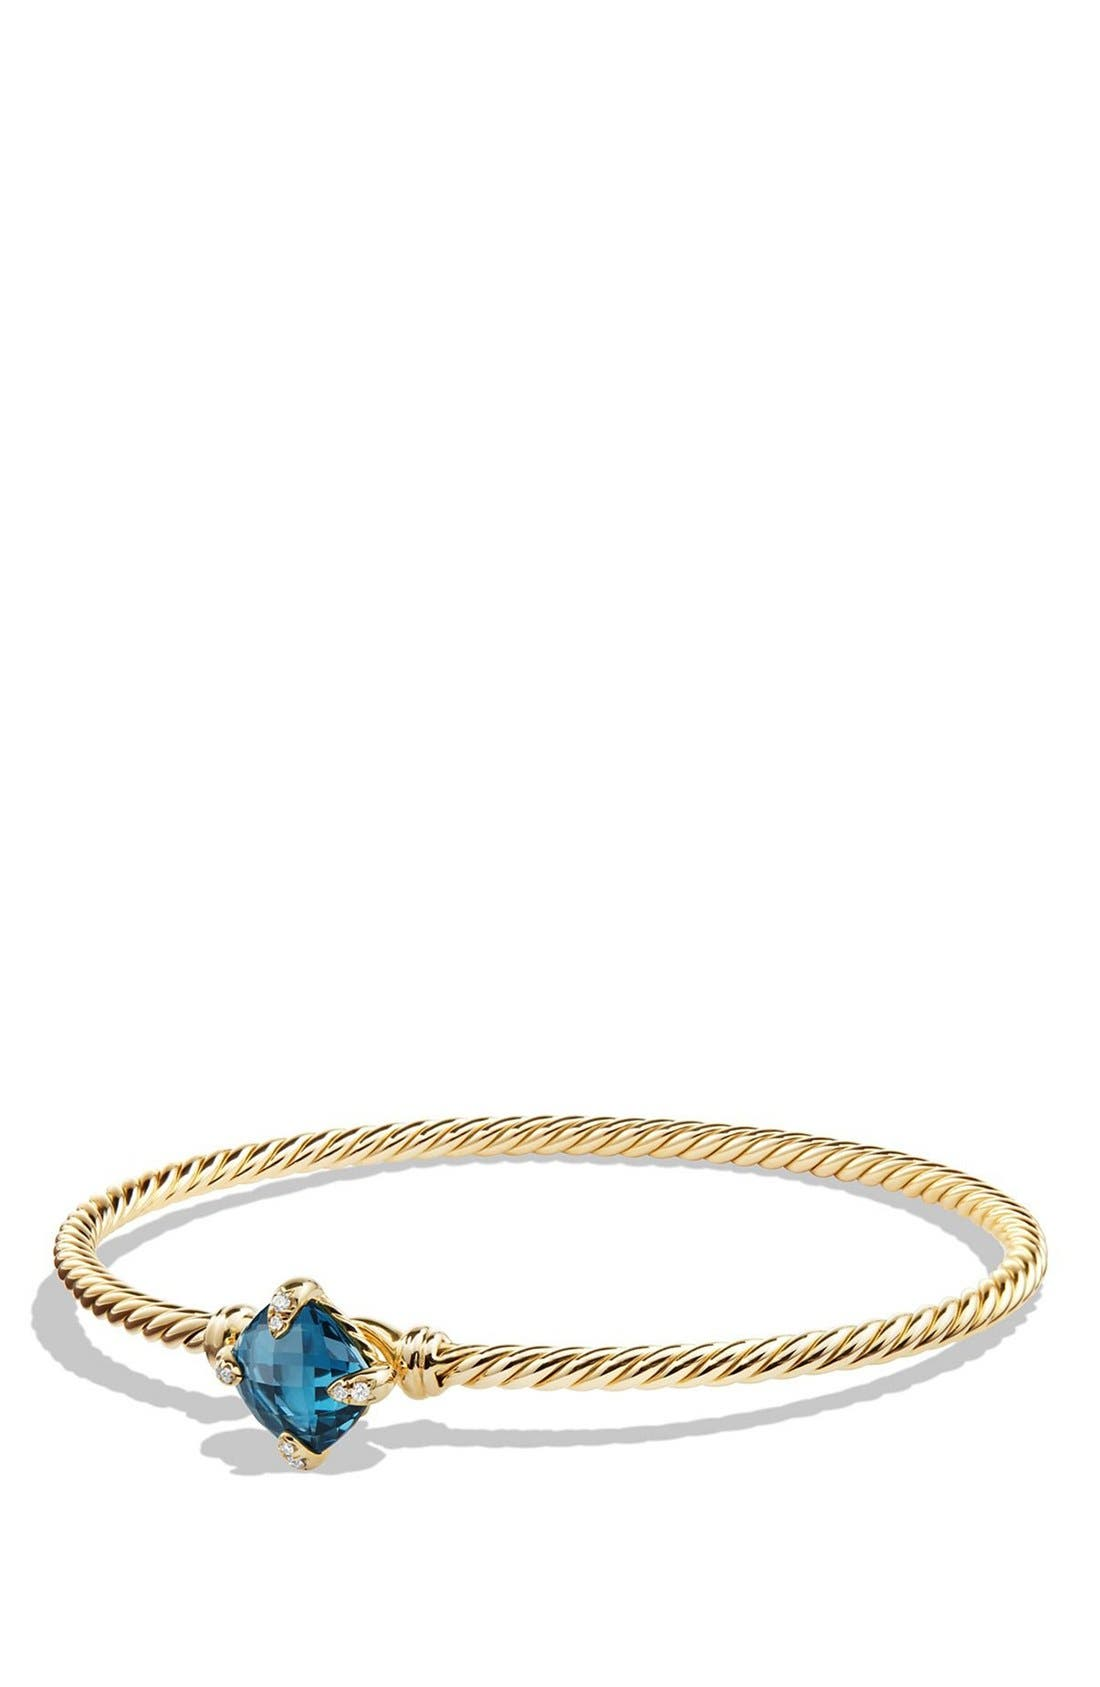 DAVID YURMAN 'Châtelaine' Bracelet in 18K Gold with